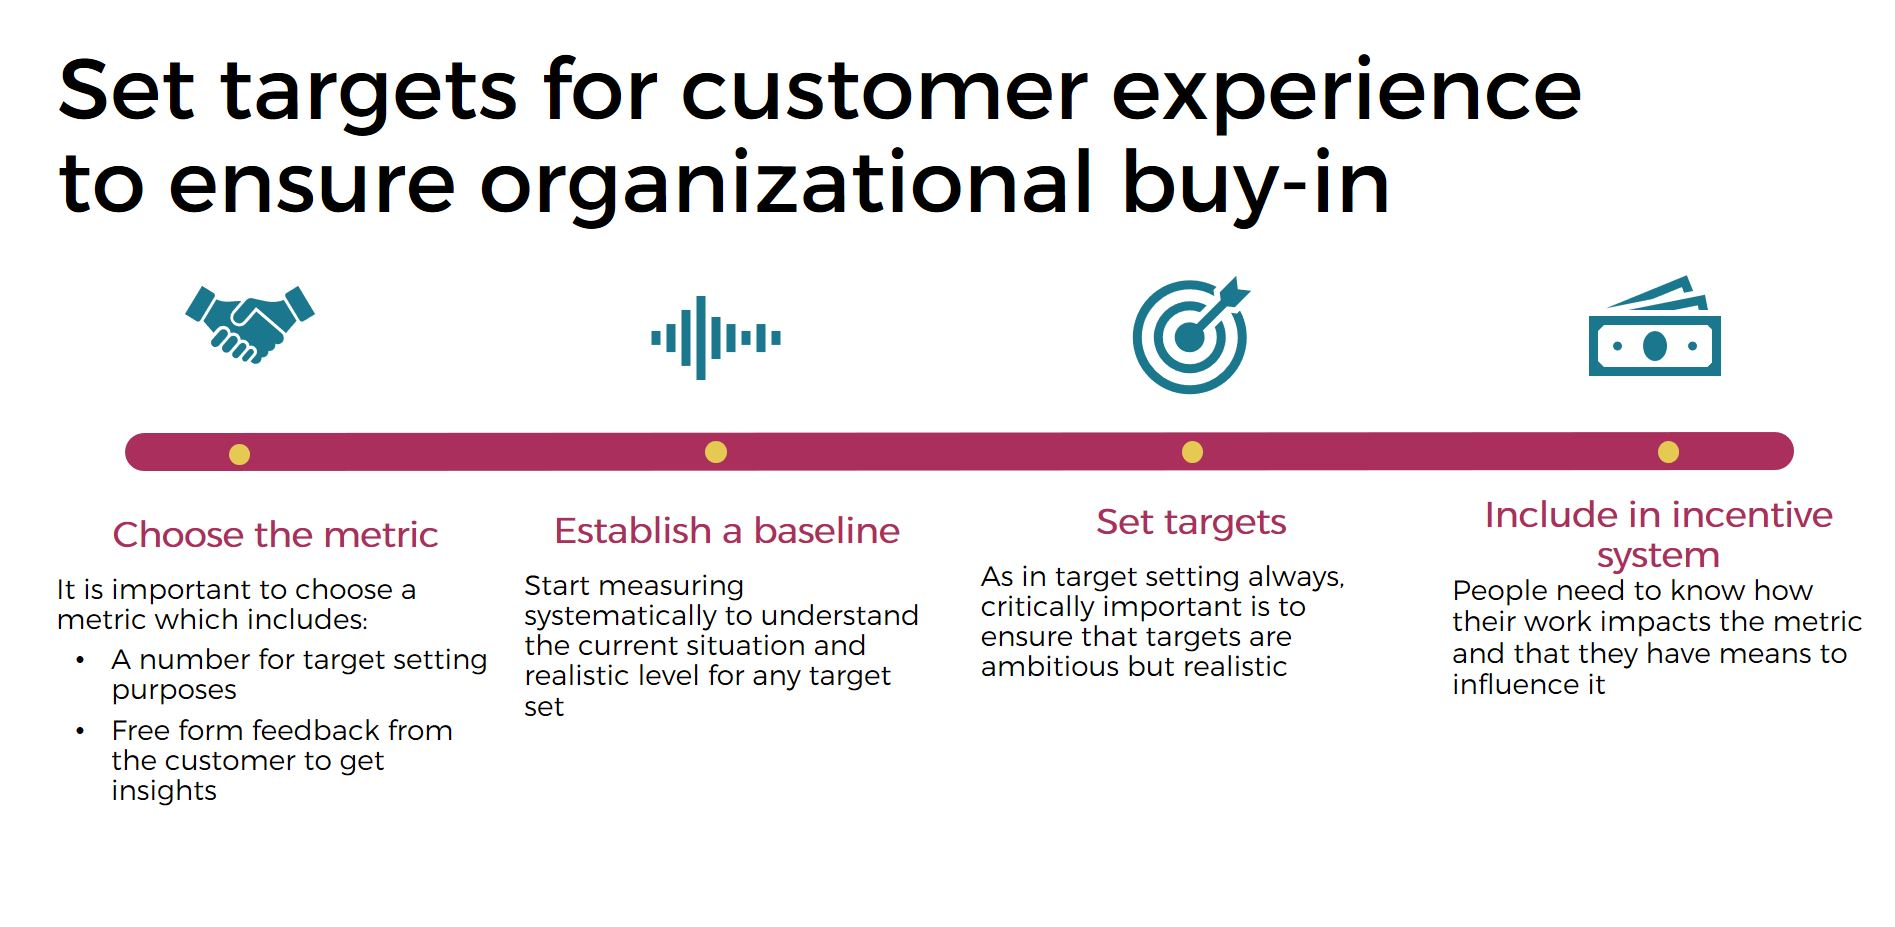 How to set targets for your customer experience management?